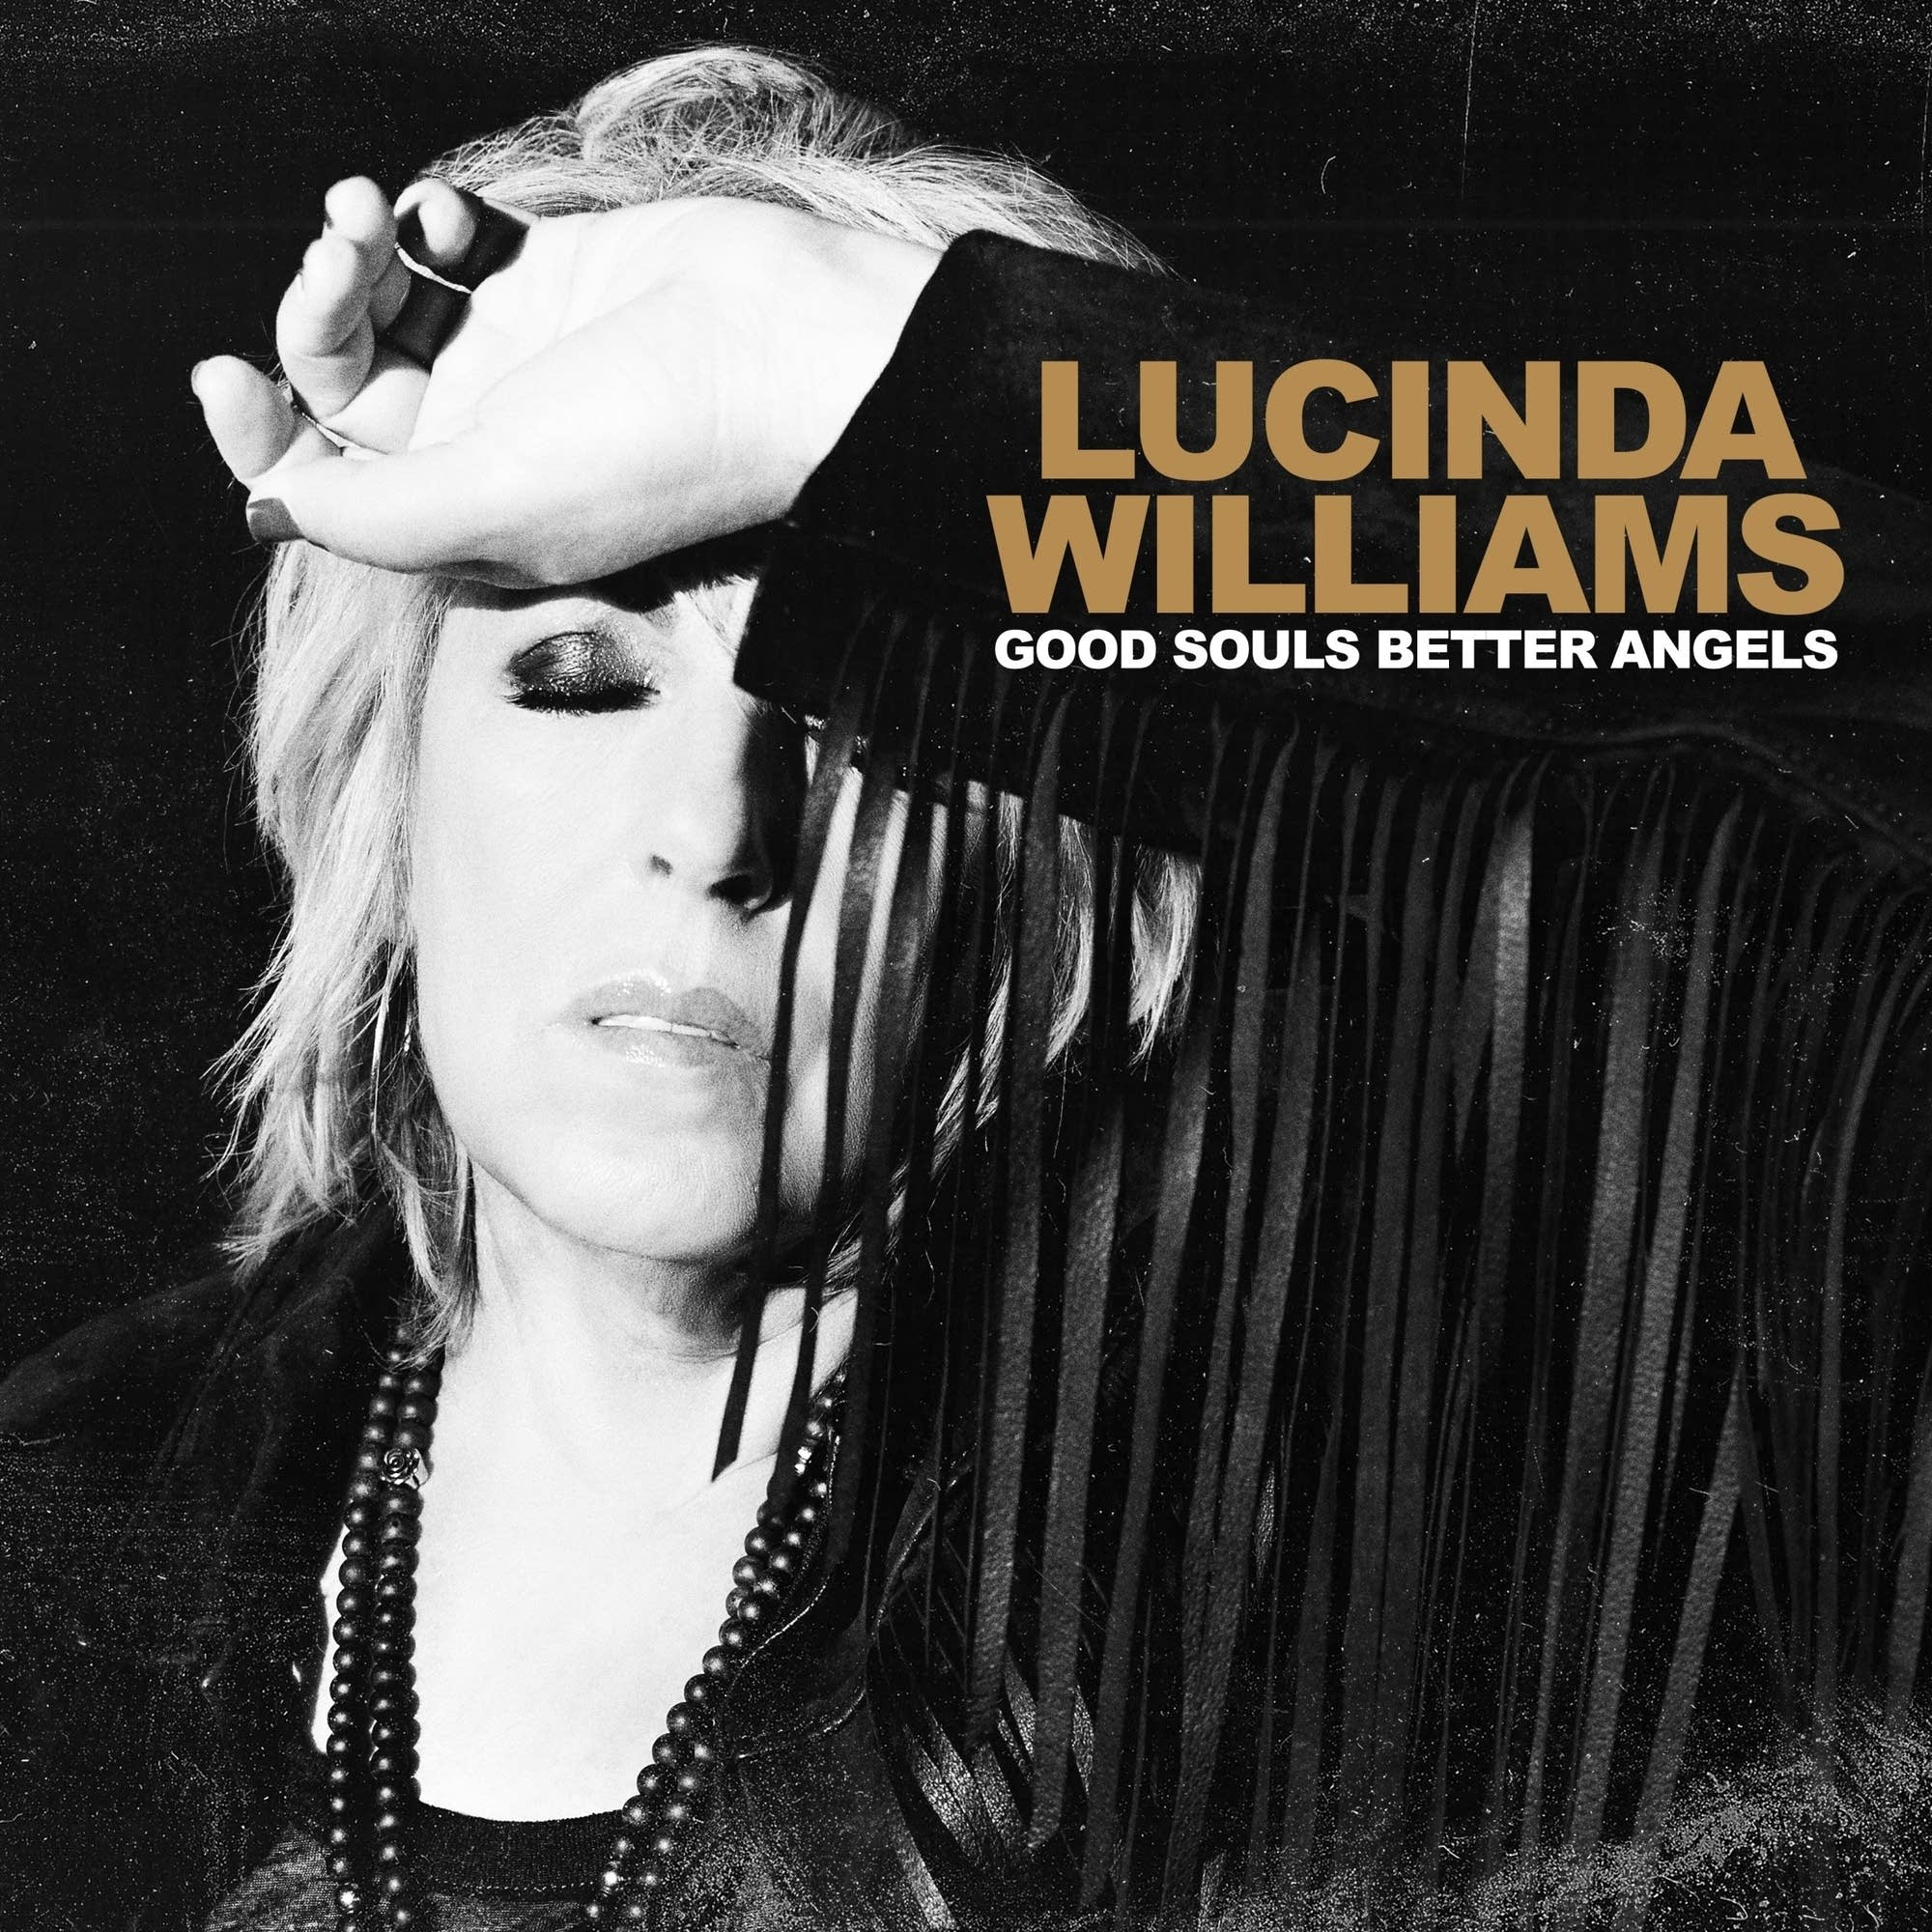 Lucinda Williams, 'Good Souls Better Angels'